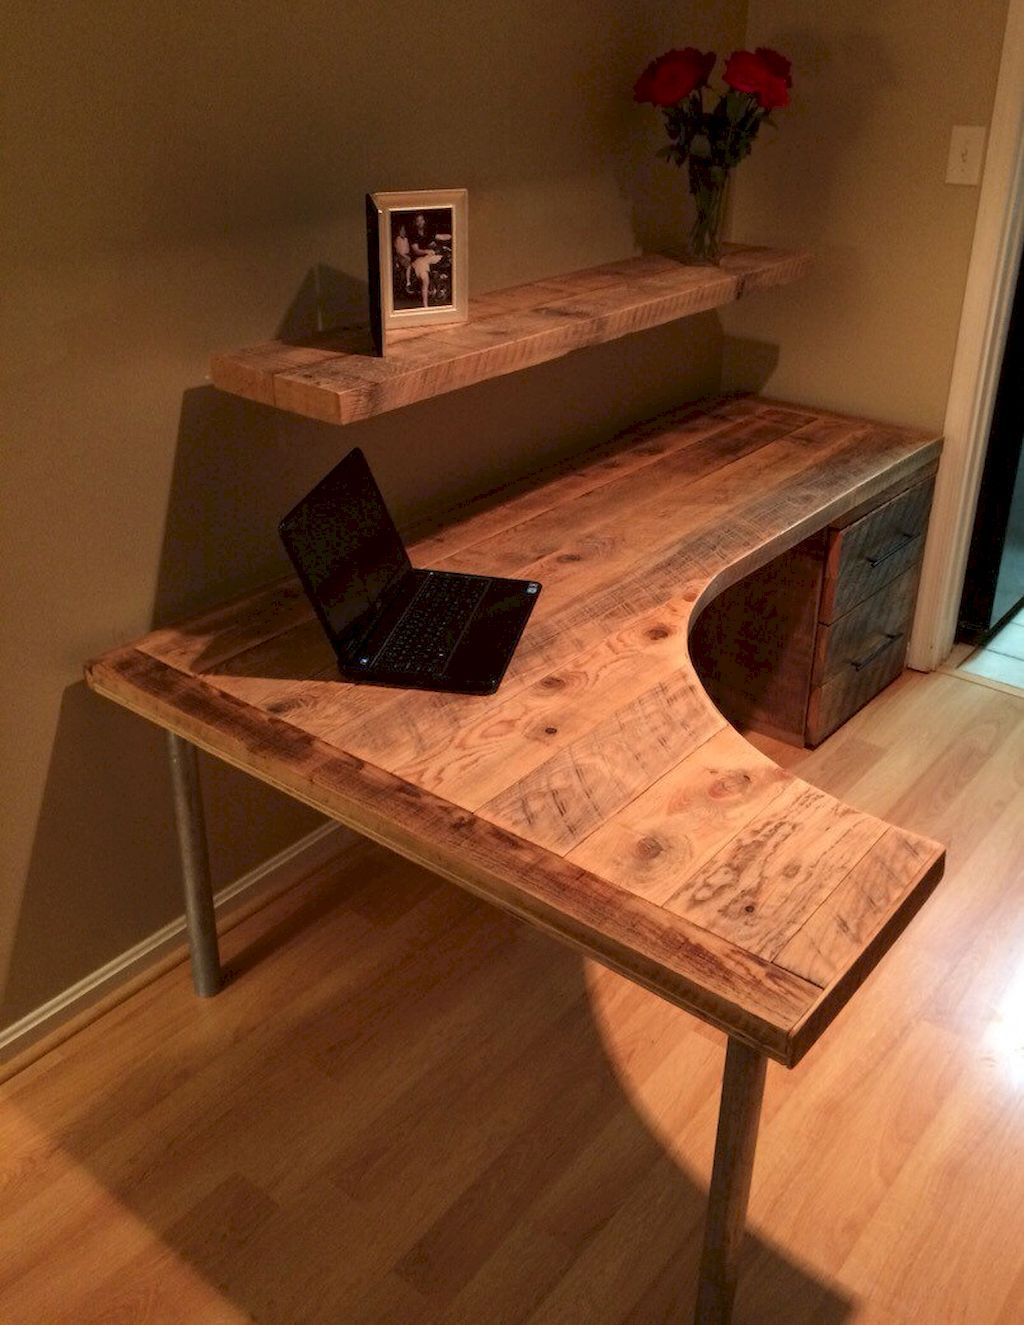 44 Elegant Computer Desk Design Ideas 33 Diy Desk Plans Office Desk Designs Diy Corner Desk